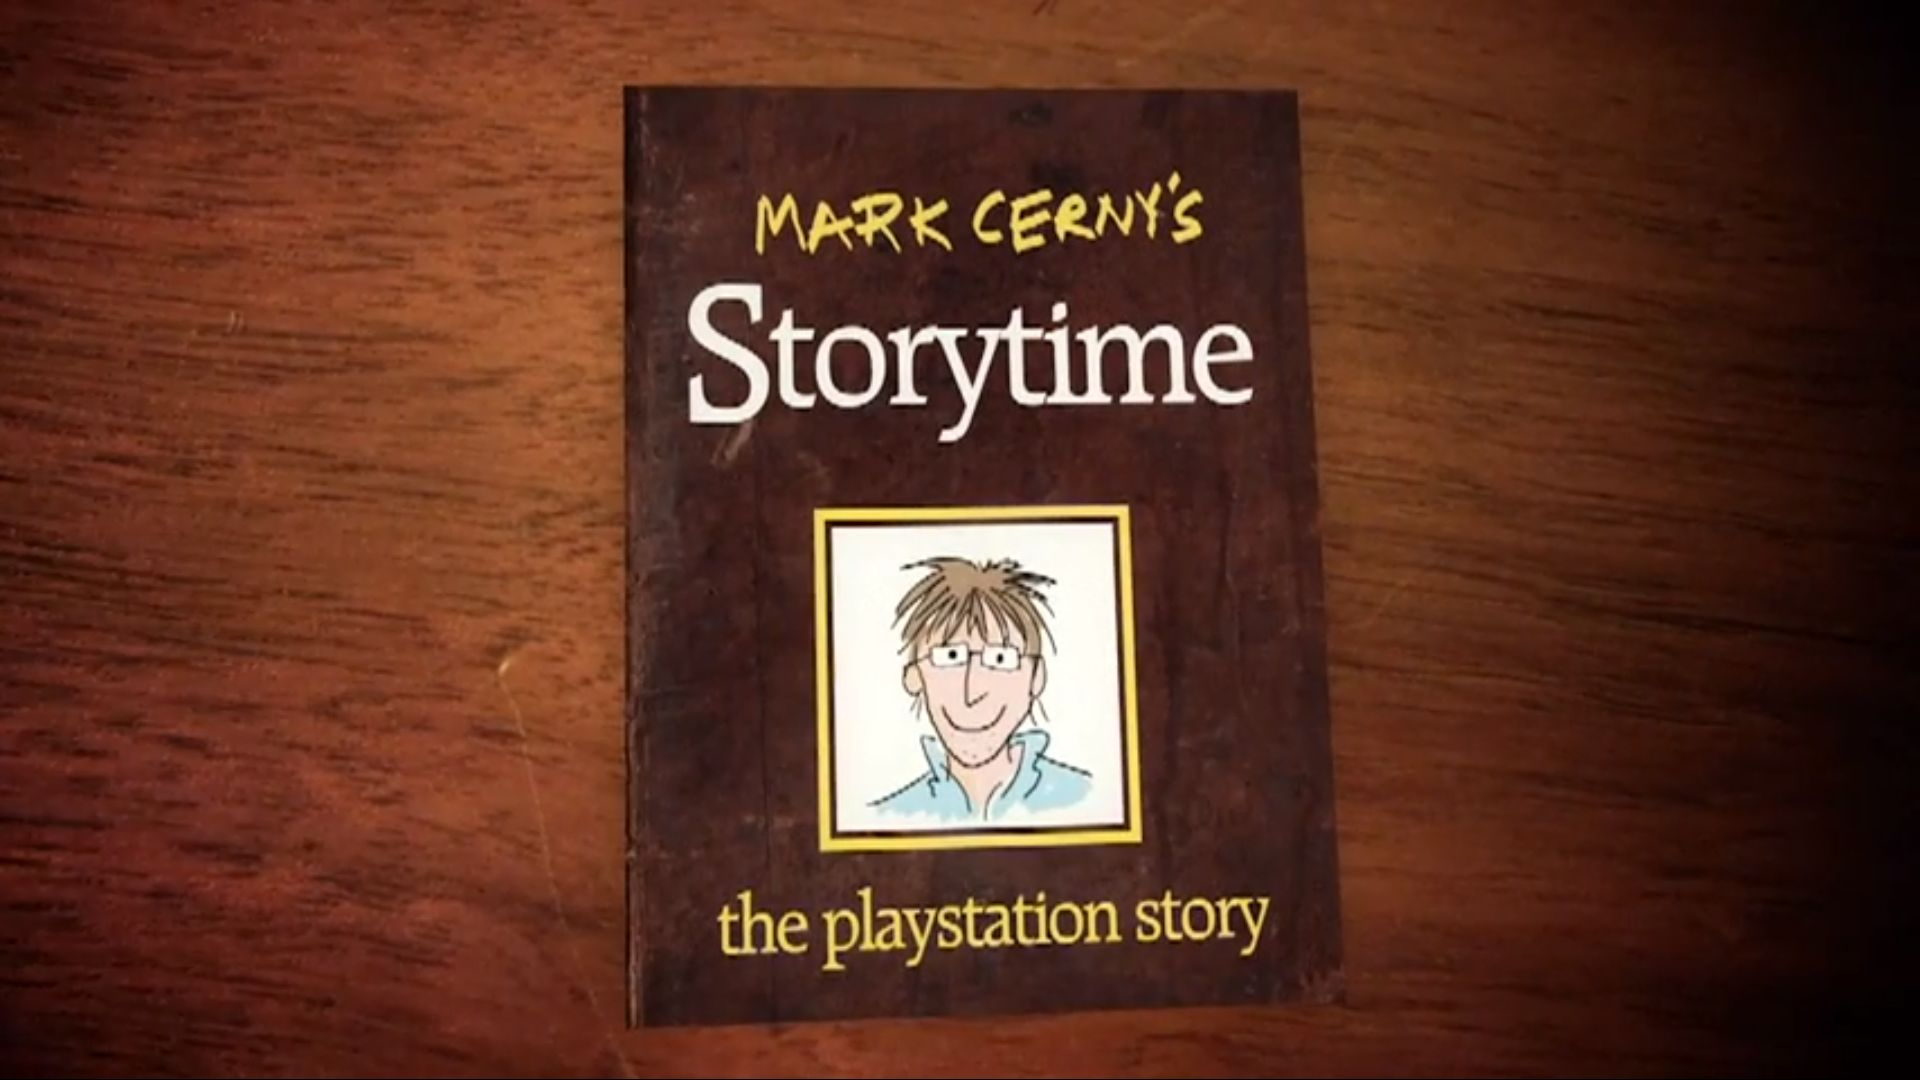 """Watch The Story of Mark Cerny and the PS4 In a Lovely """"Bedtime Story"""" Cartoon Form 